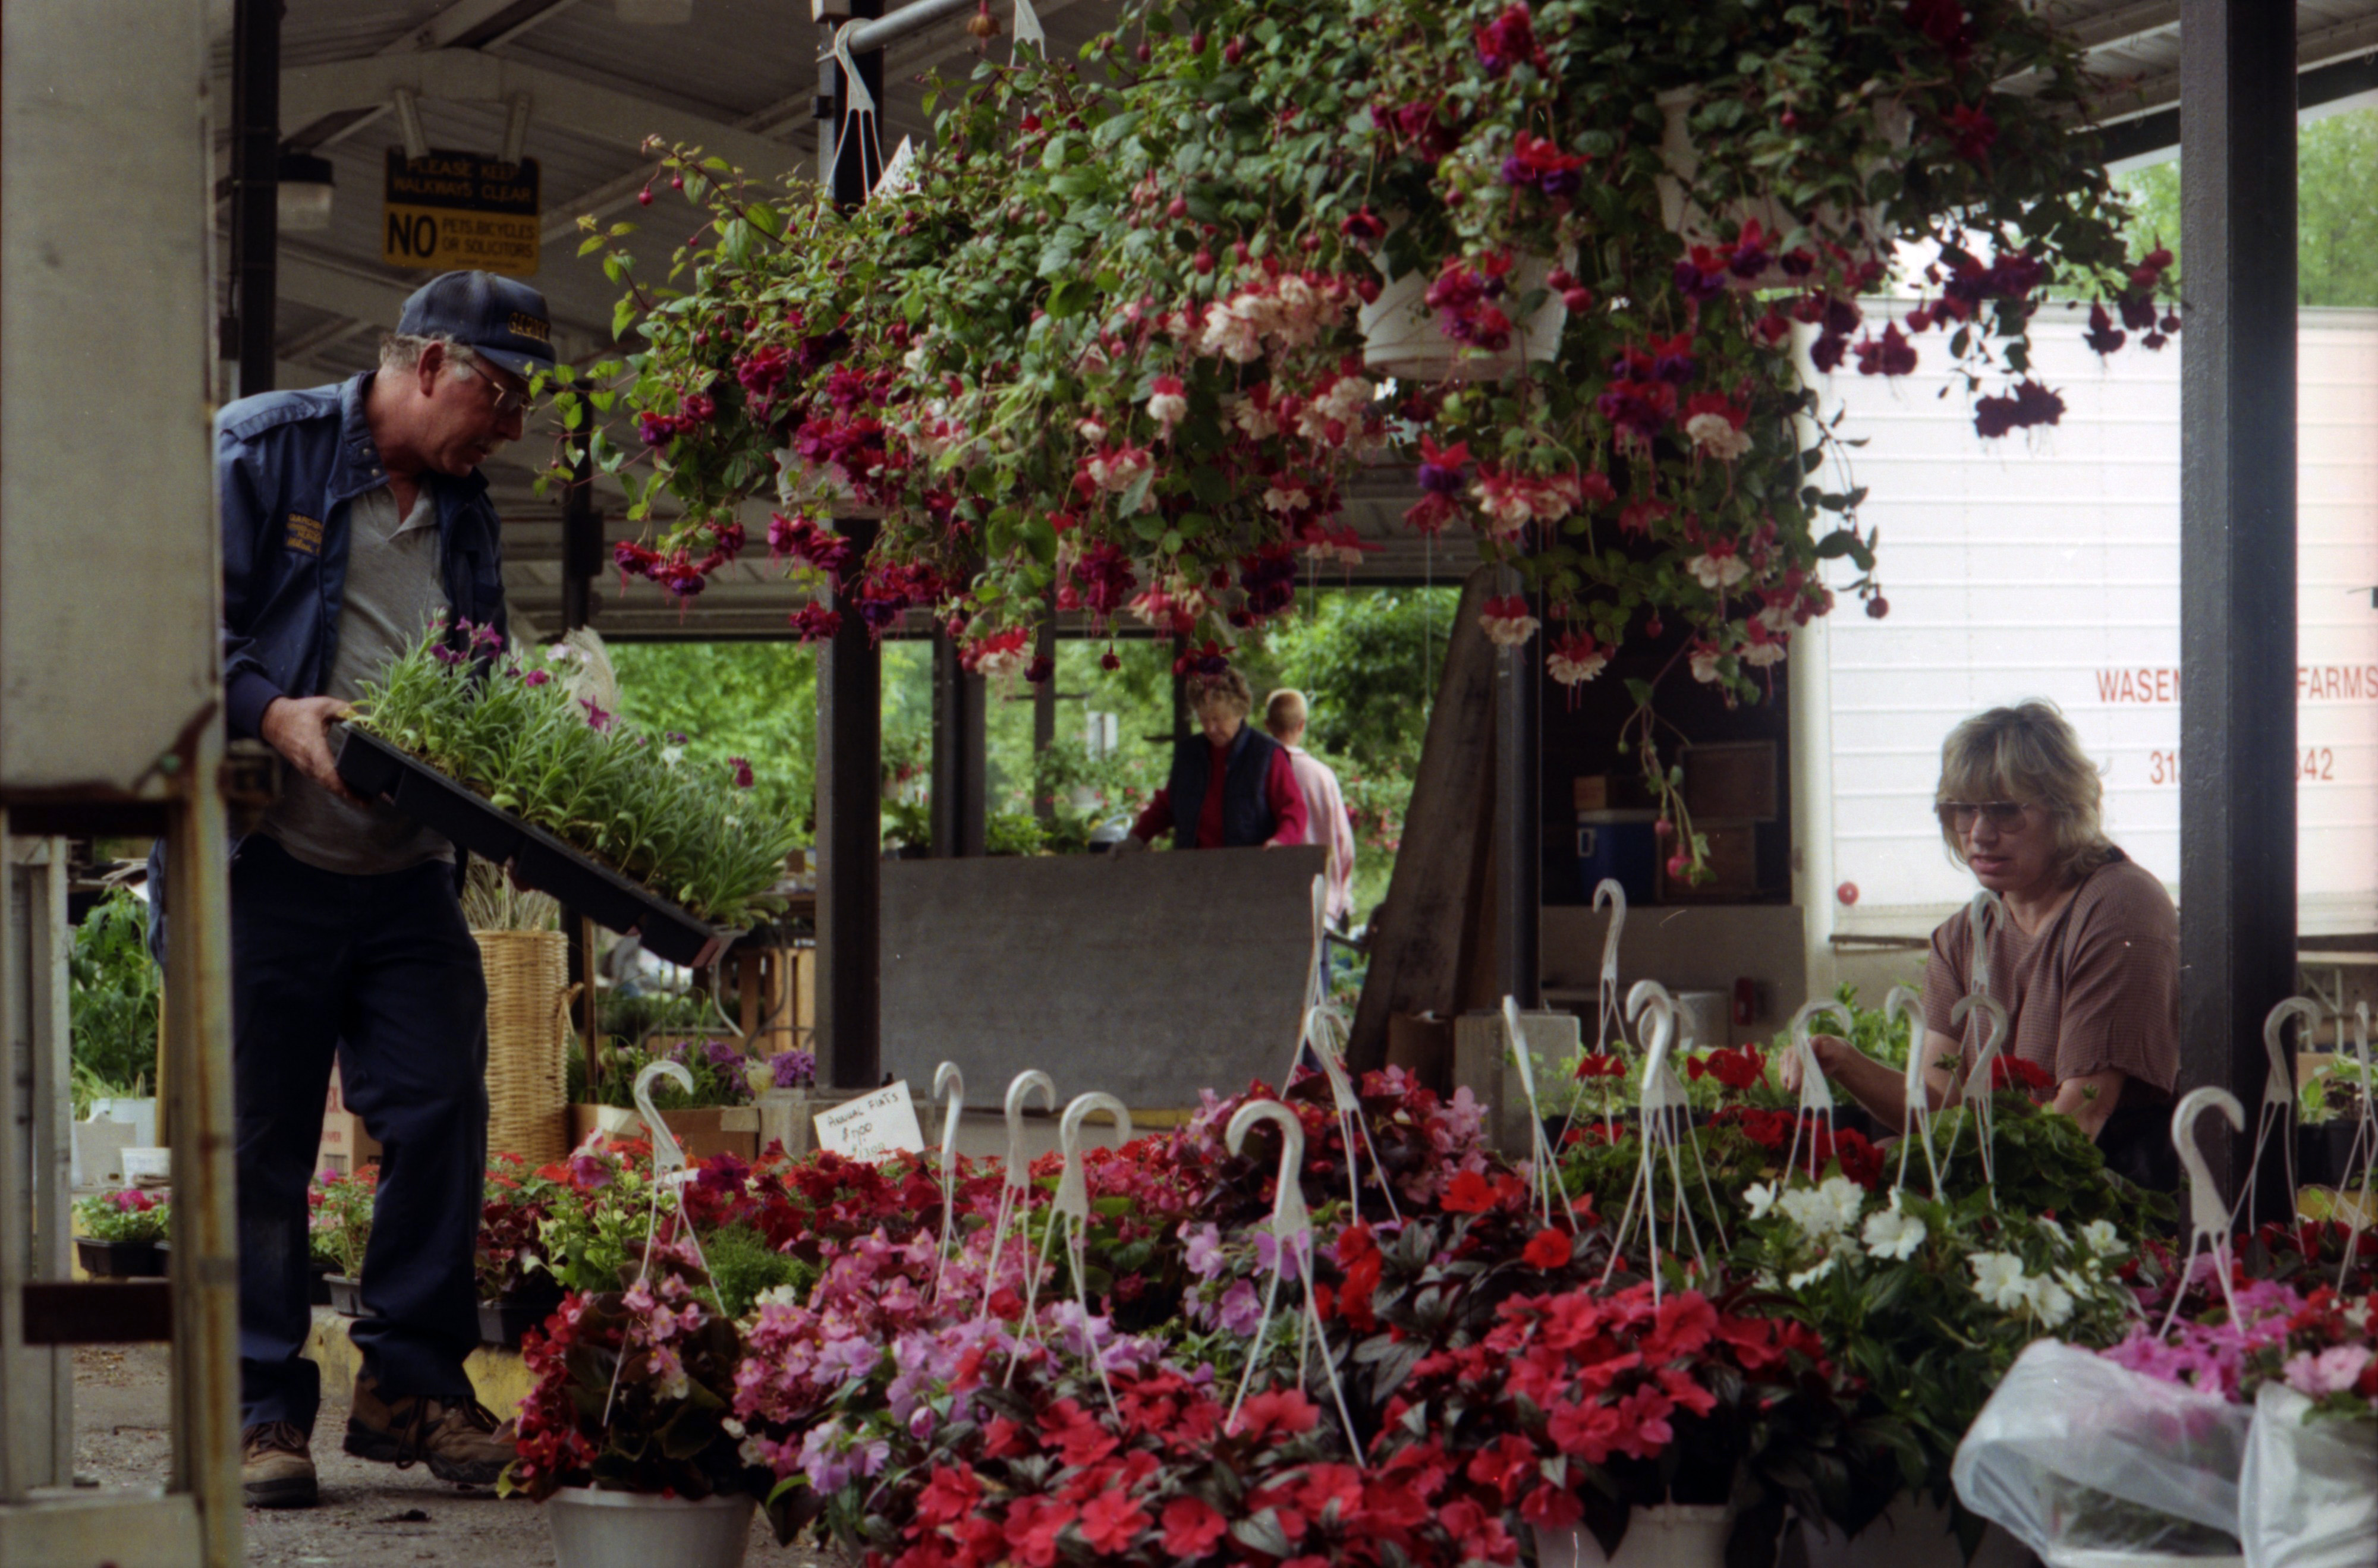 Flowers At The Ann Arbor Farmers Market, June 1996 image